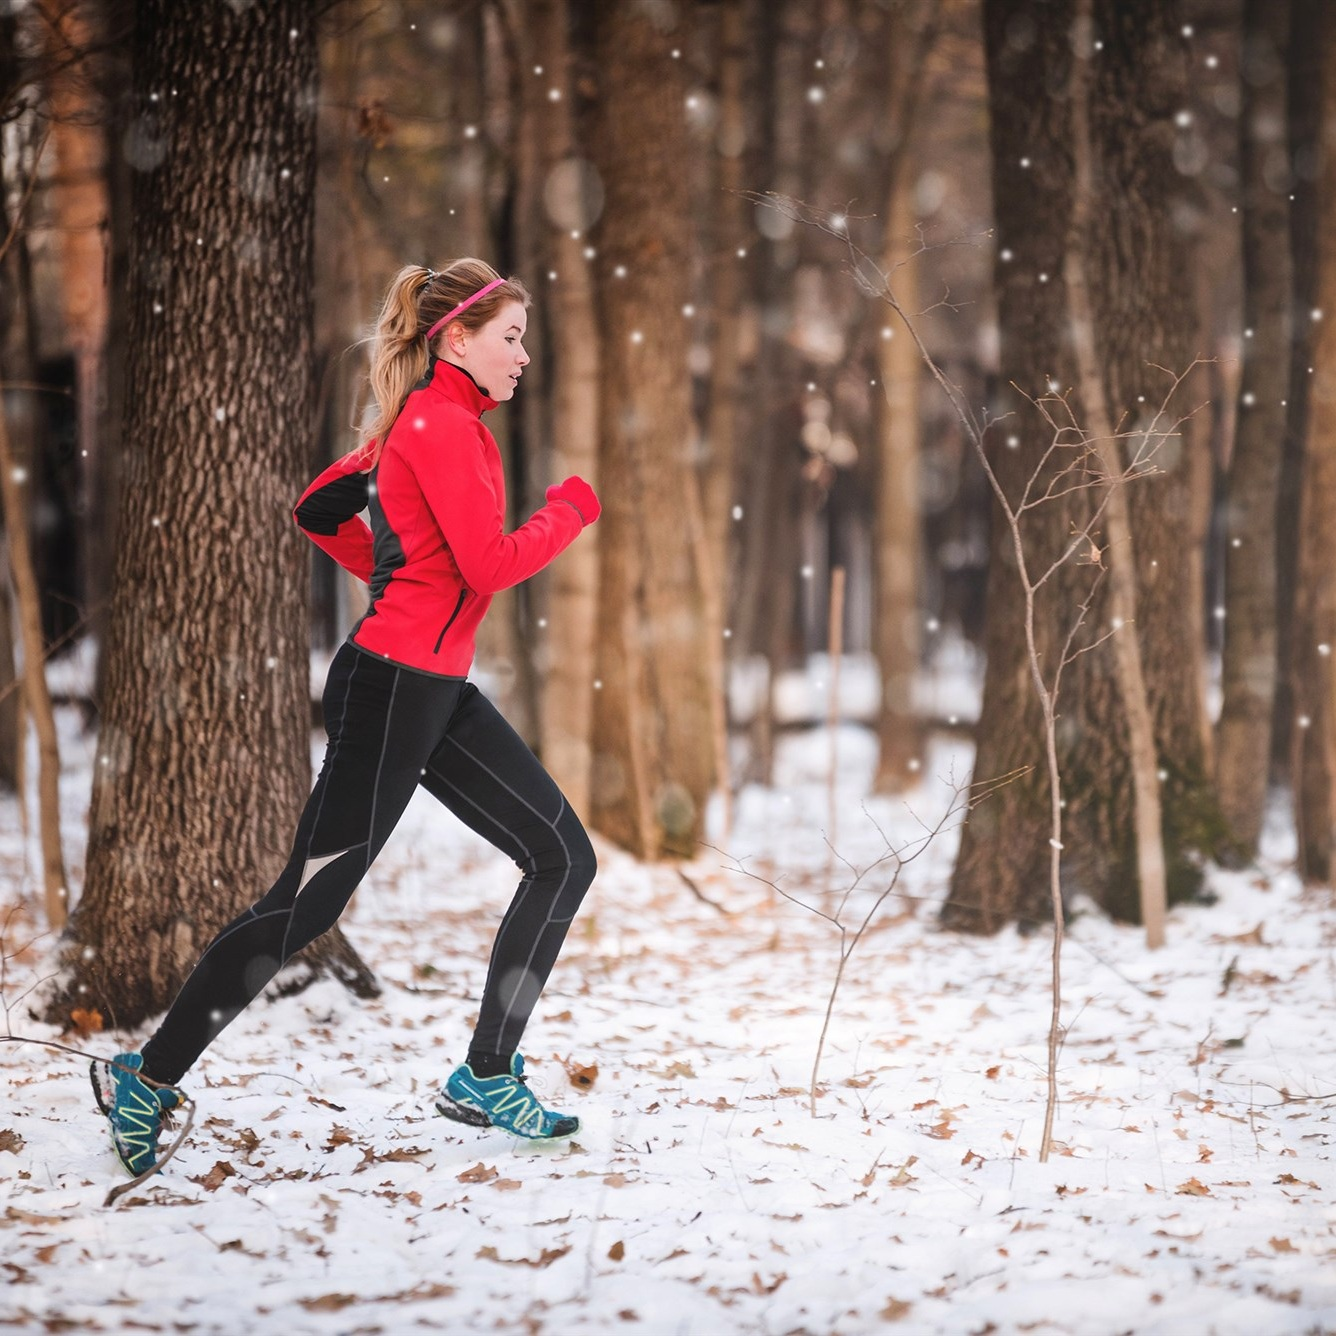 6 tips for working out in winter weather - NBC News BETTER